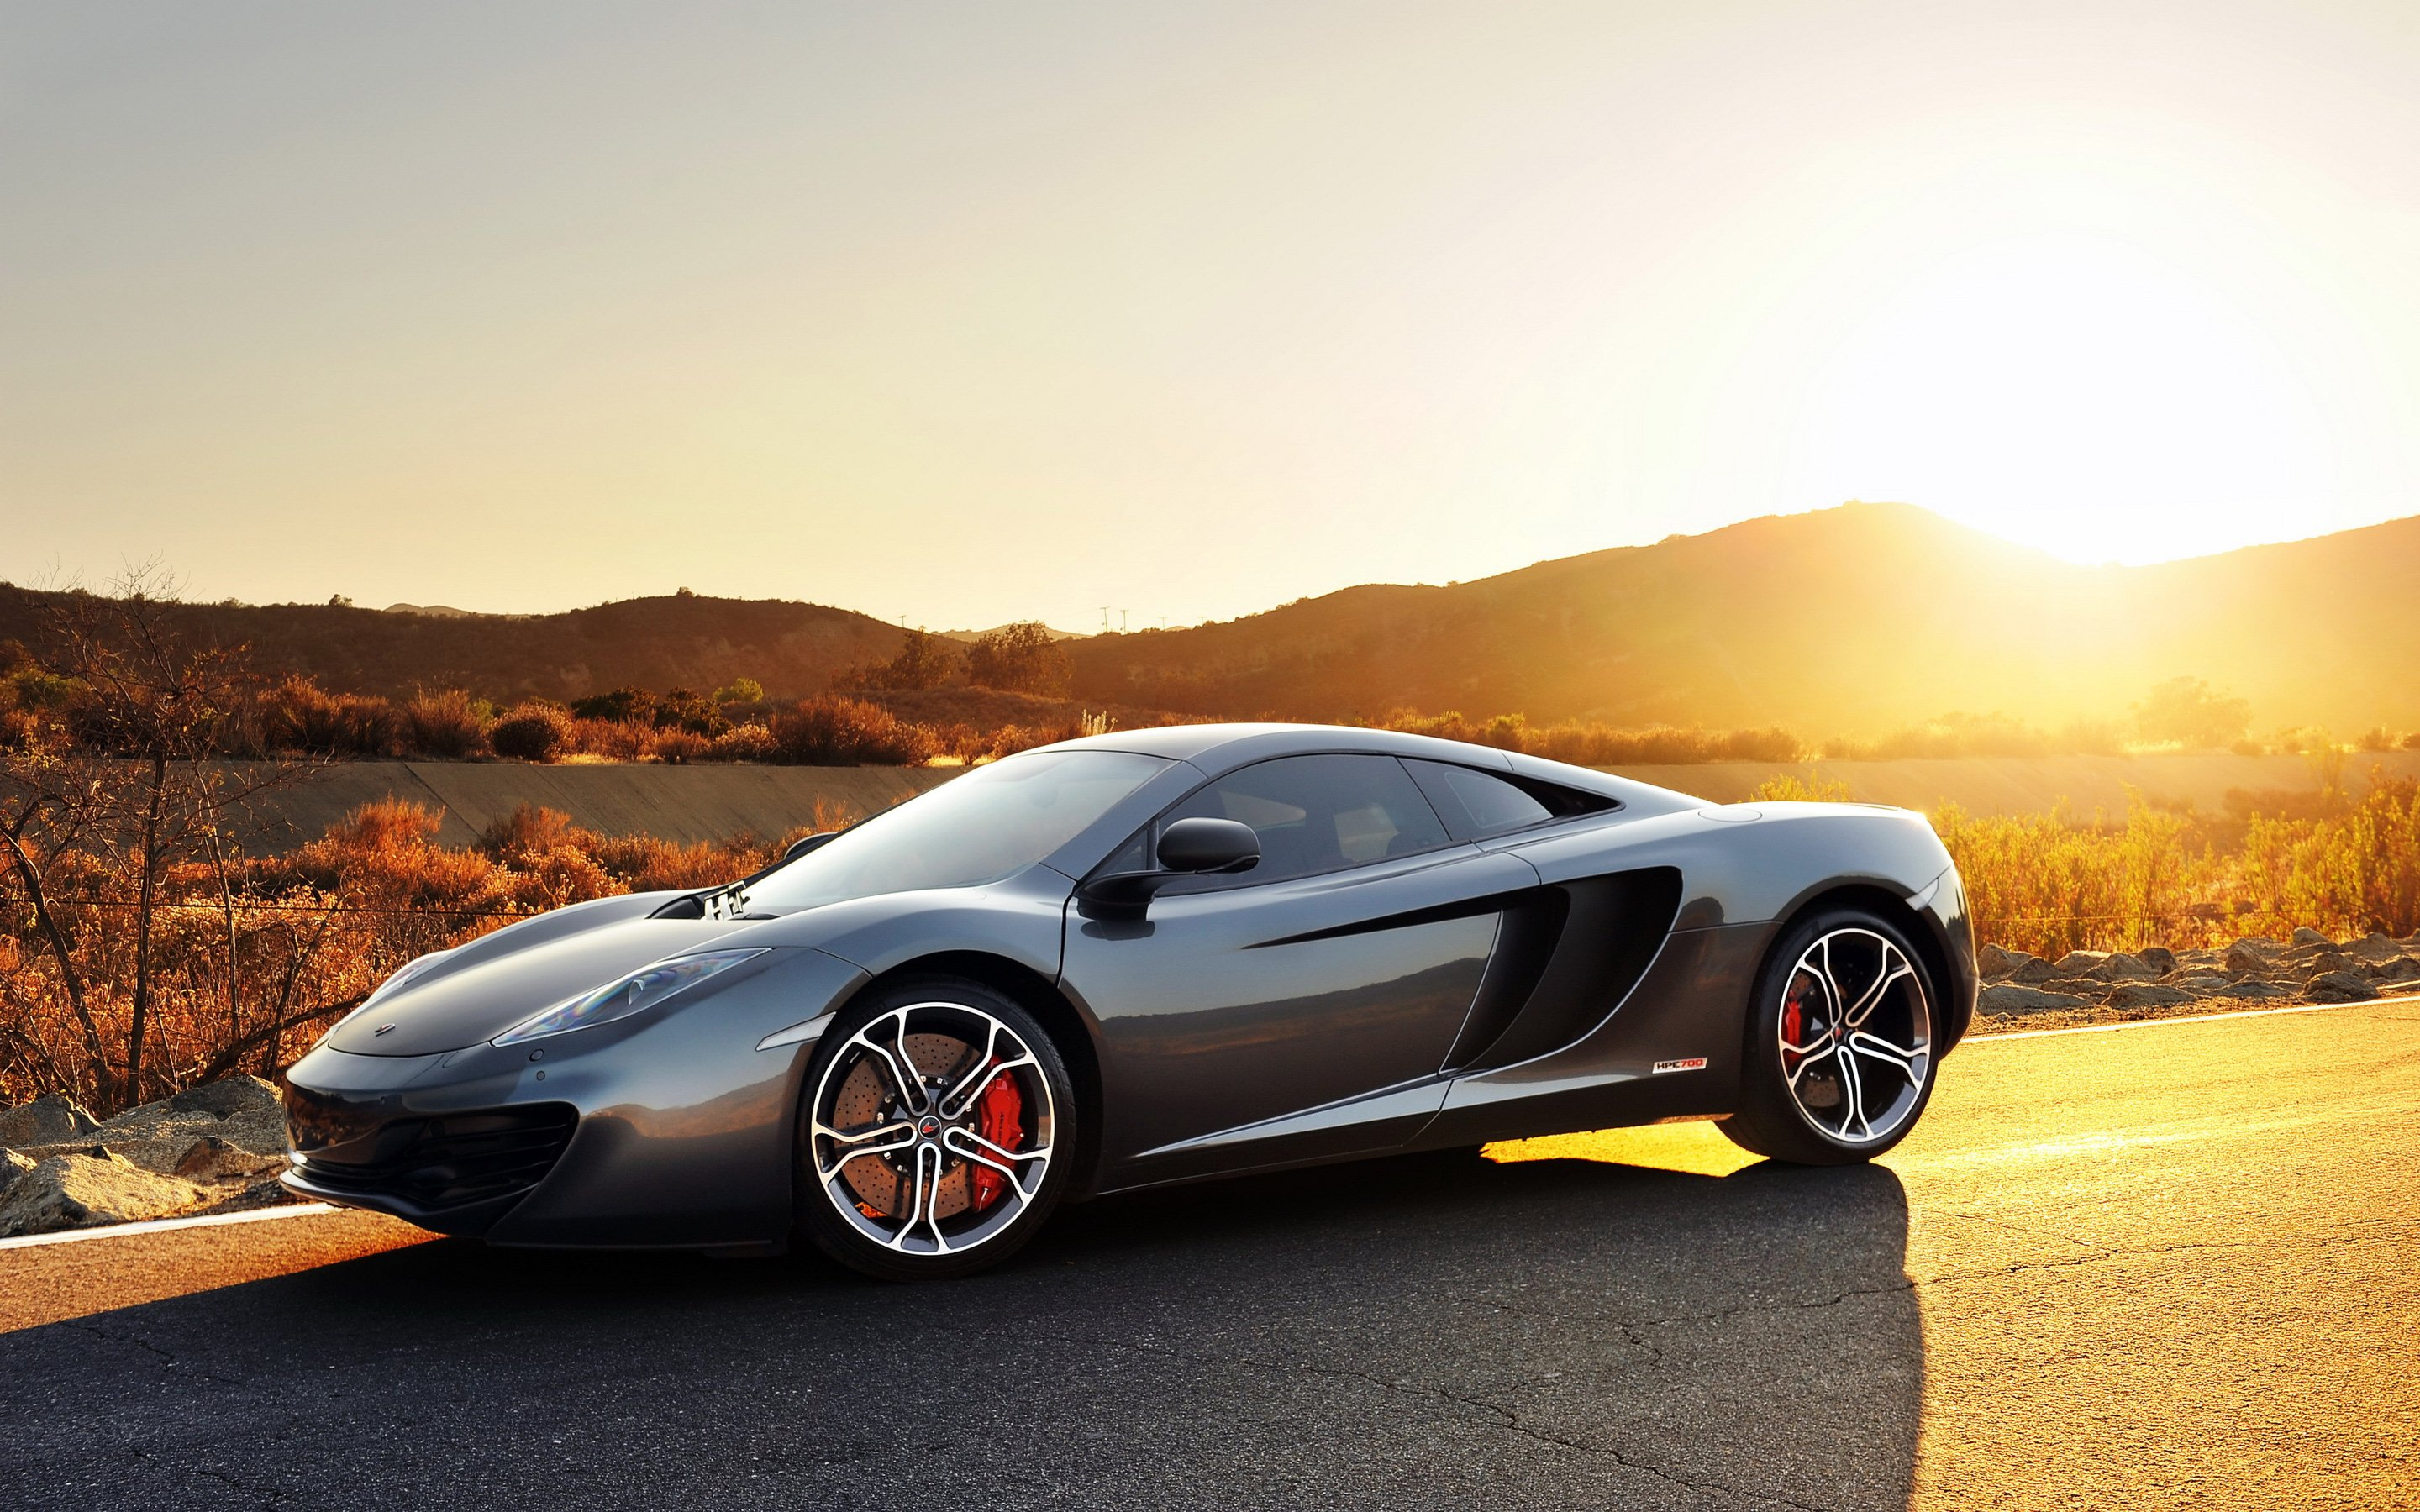 Supercar wallpaper 2880x1800 76129 2880x1800